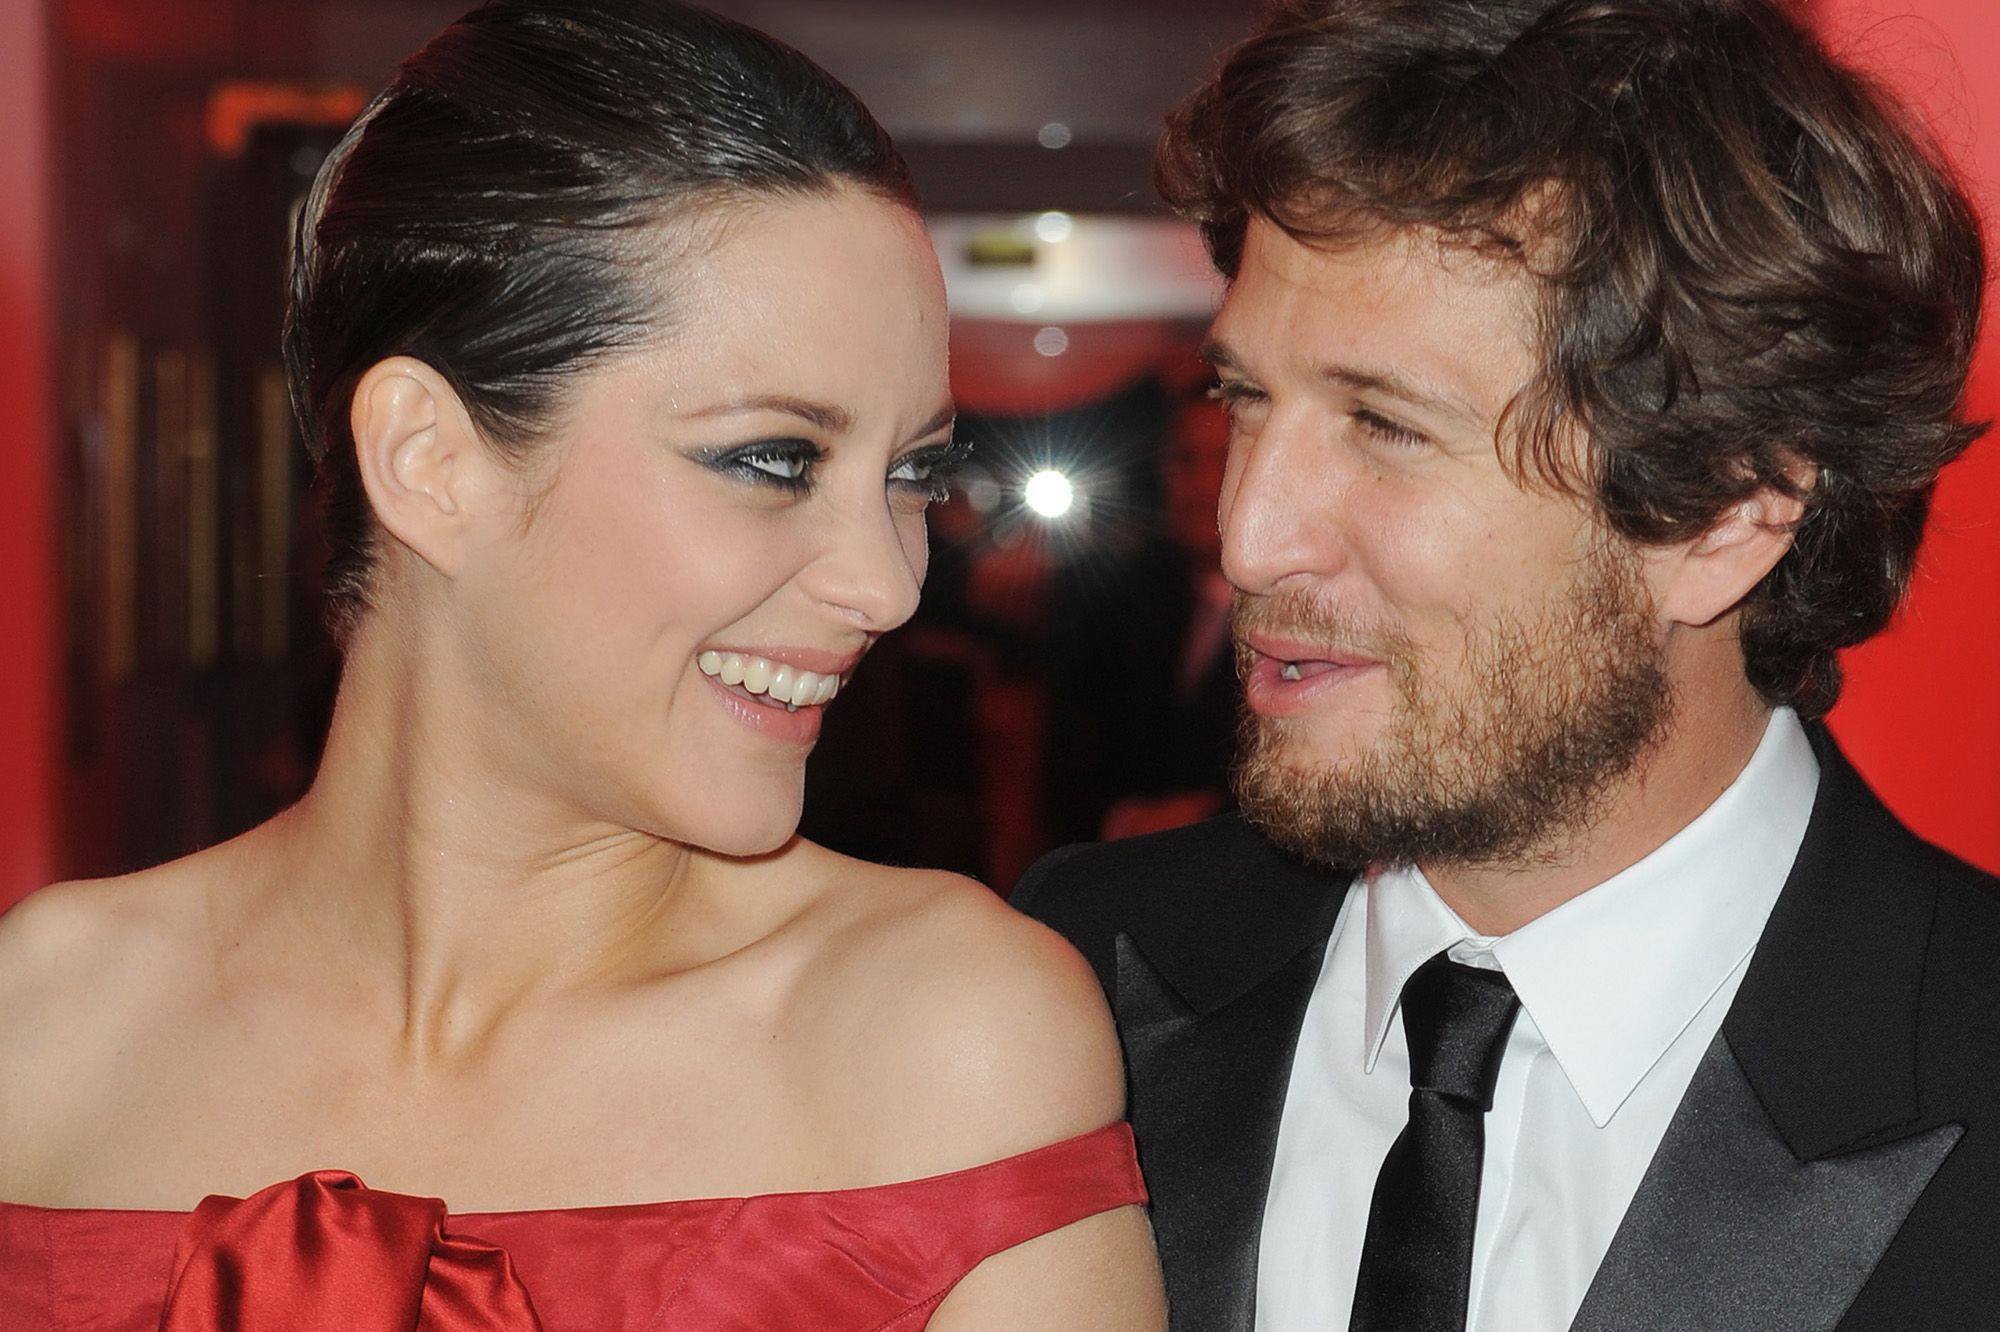 Guillaume Canet, l'antistar